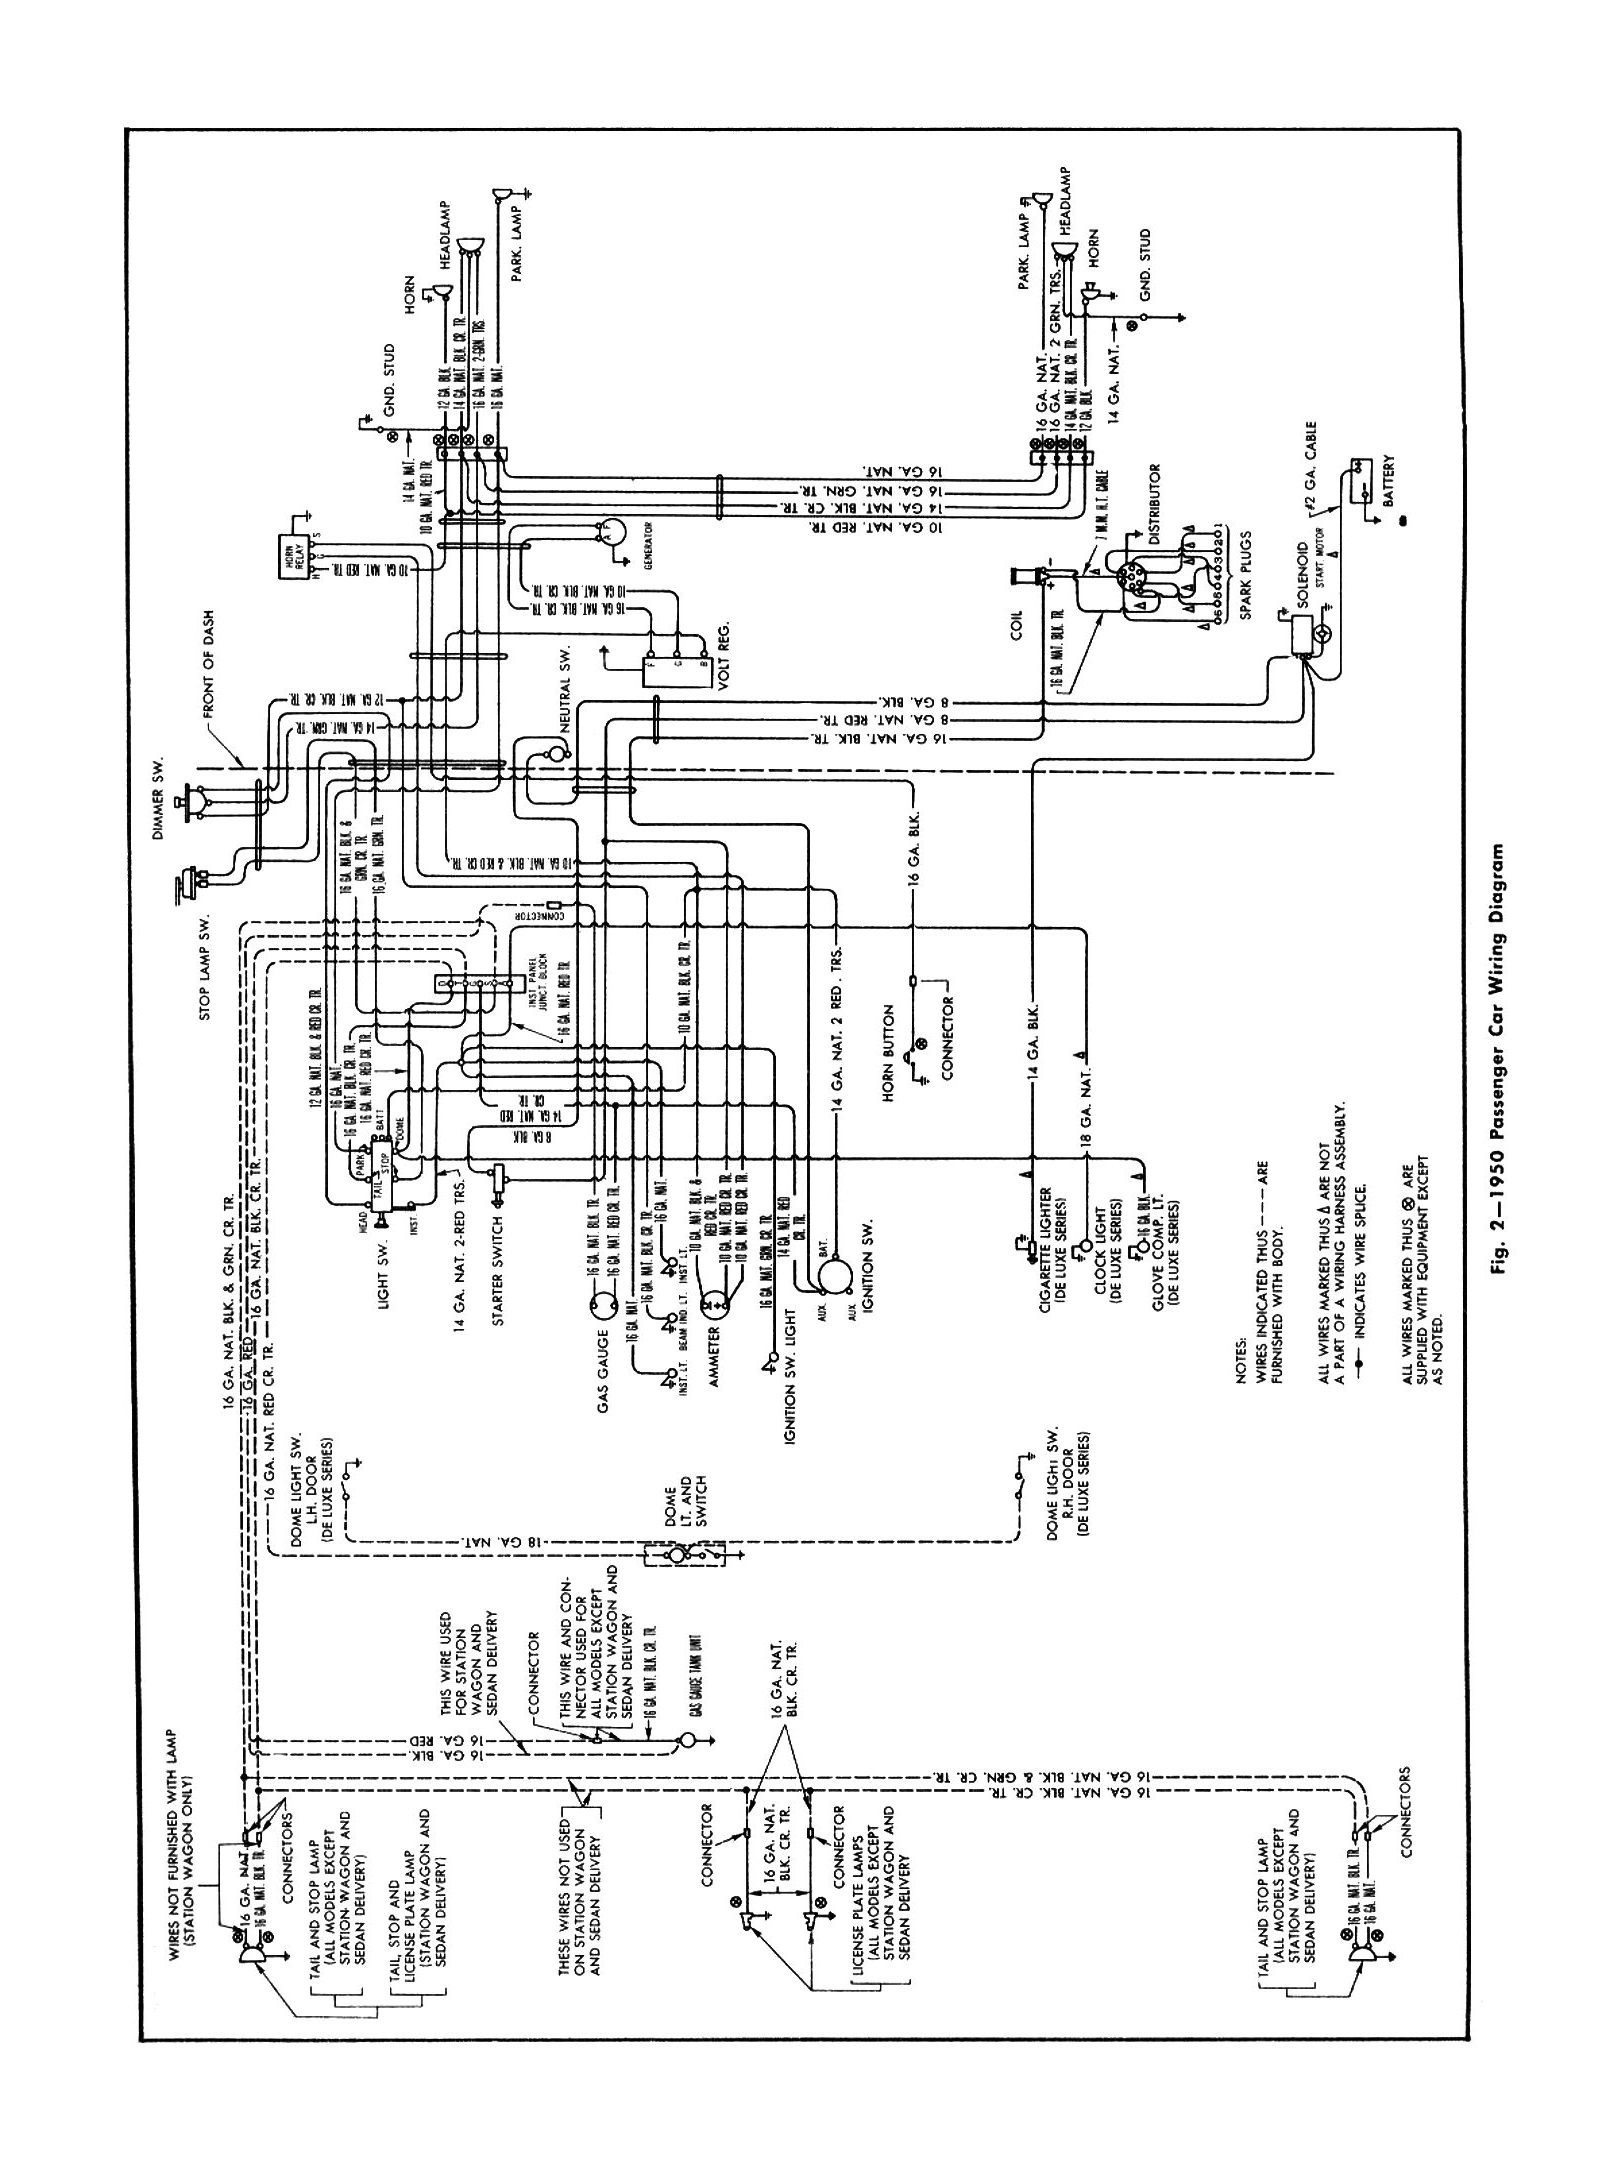 General Wiring Diagram For The Gmc Trucks Series 300 And Up